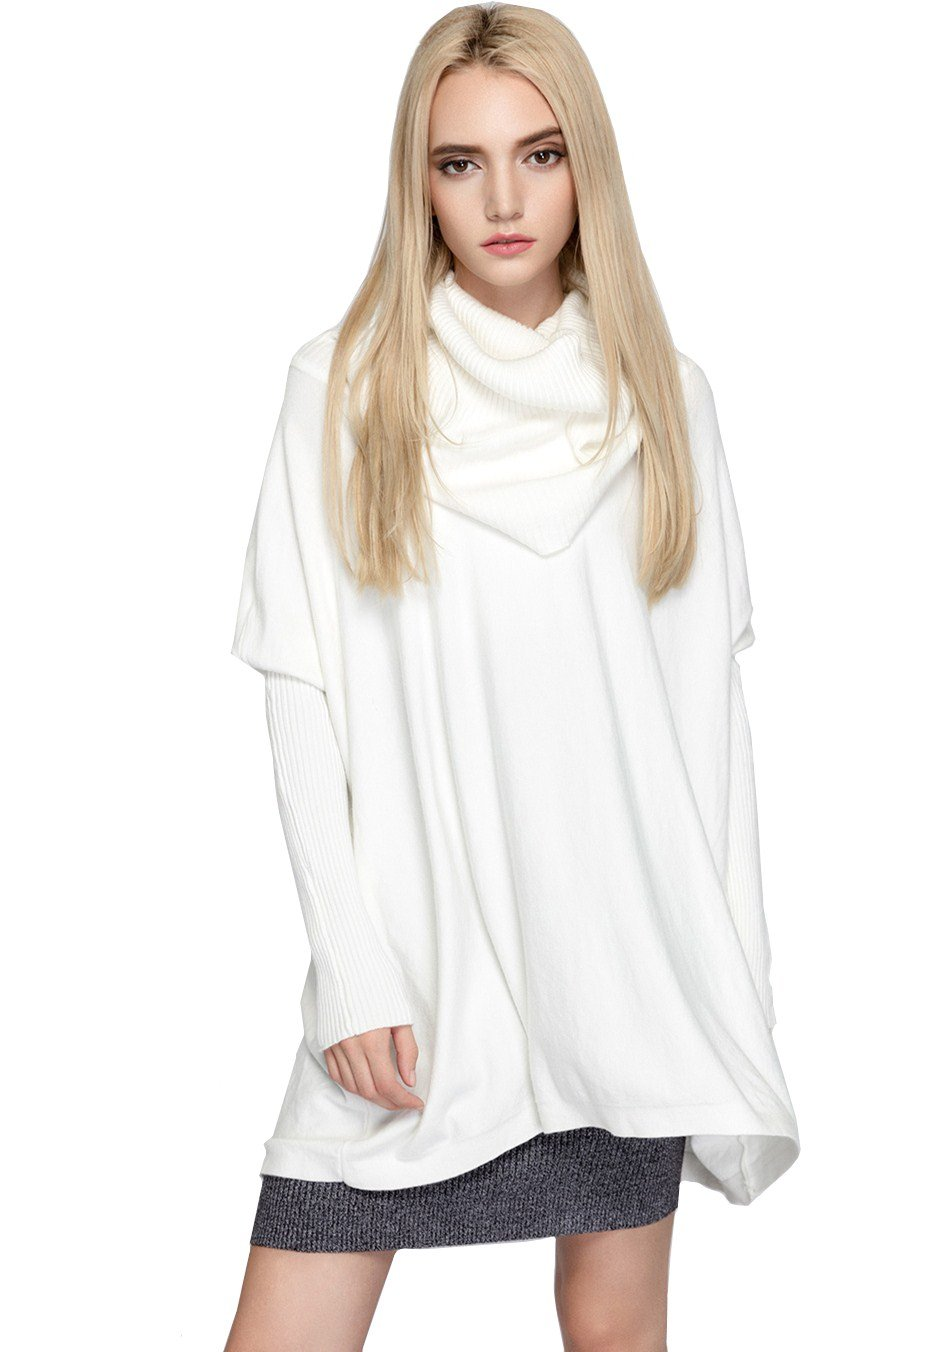 YSJ Womens Oversized Turtleneck Long Sleeve Knit Pullover Sweater Shirts (One Size, White)